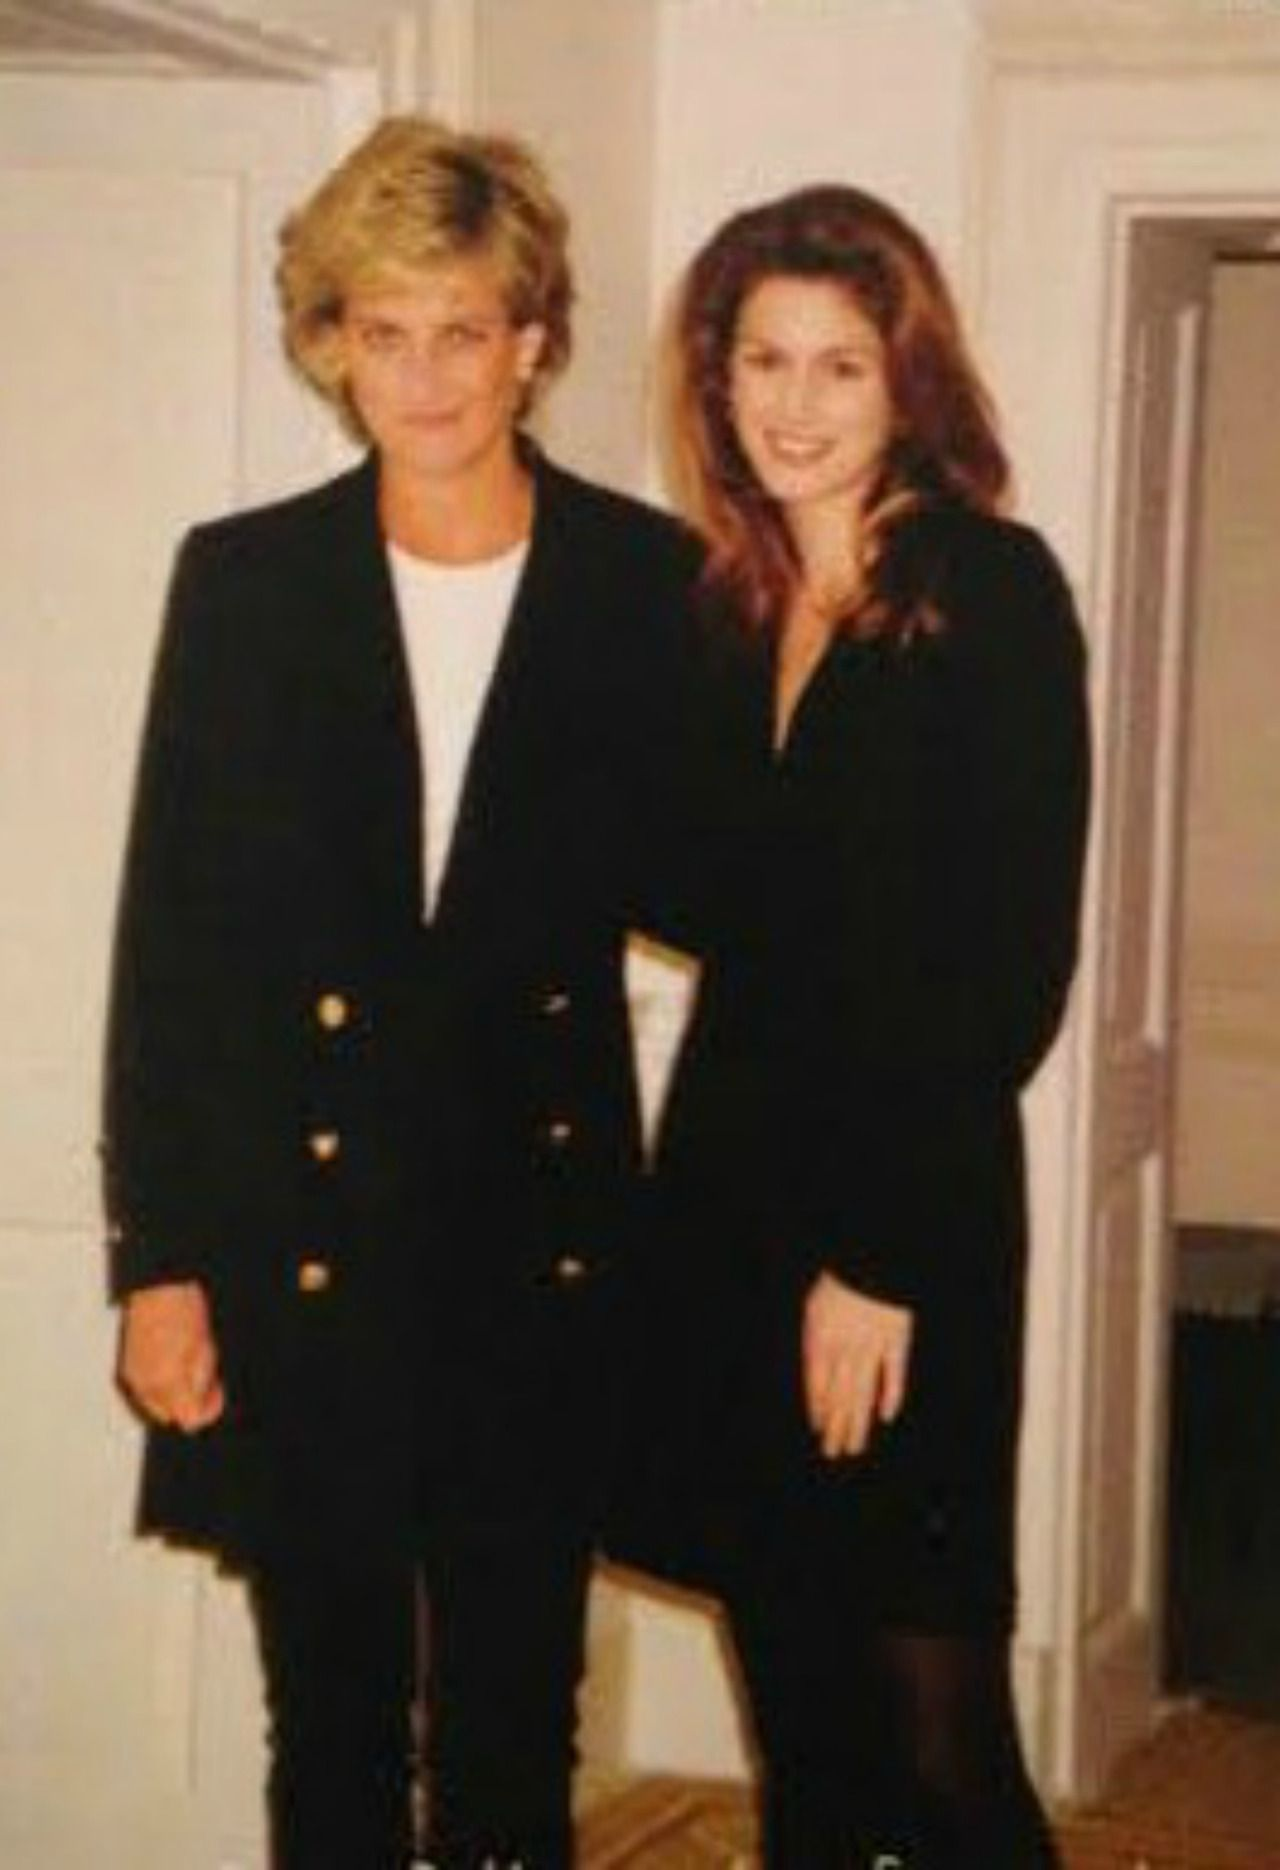 Shy Di When Prince William Said He Had A Crush On Cindy Crawford His Mum Diana Invited The Supermodel To Join Them For Tea